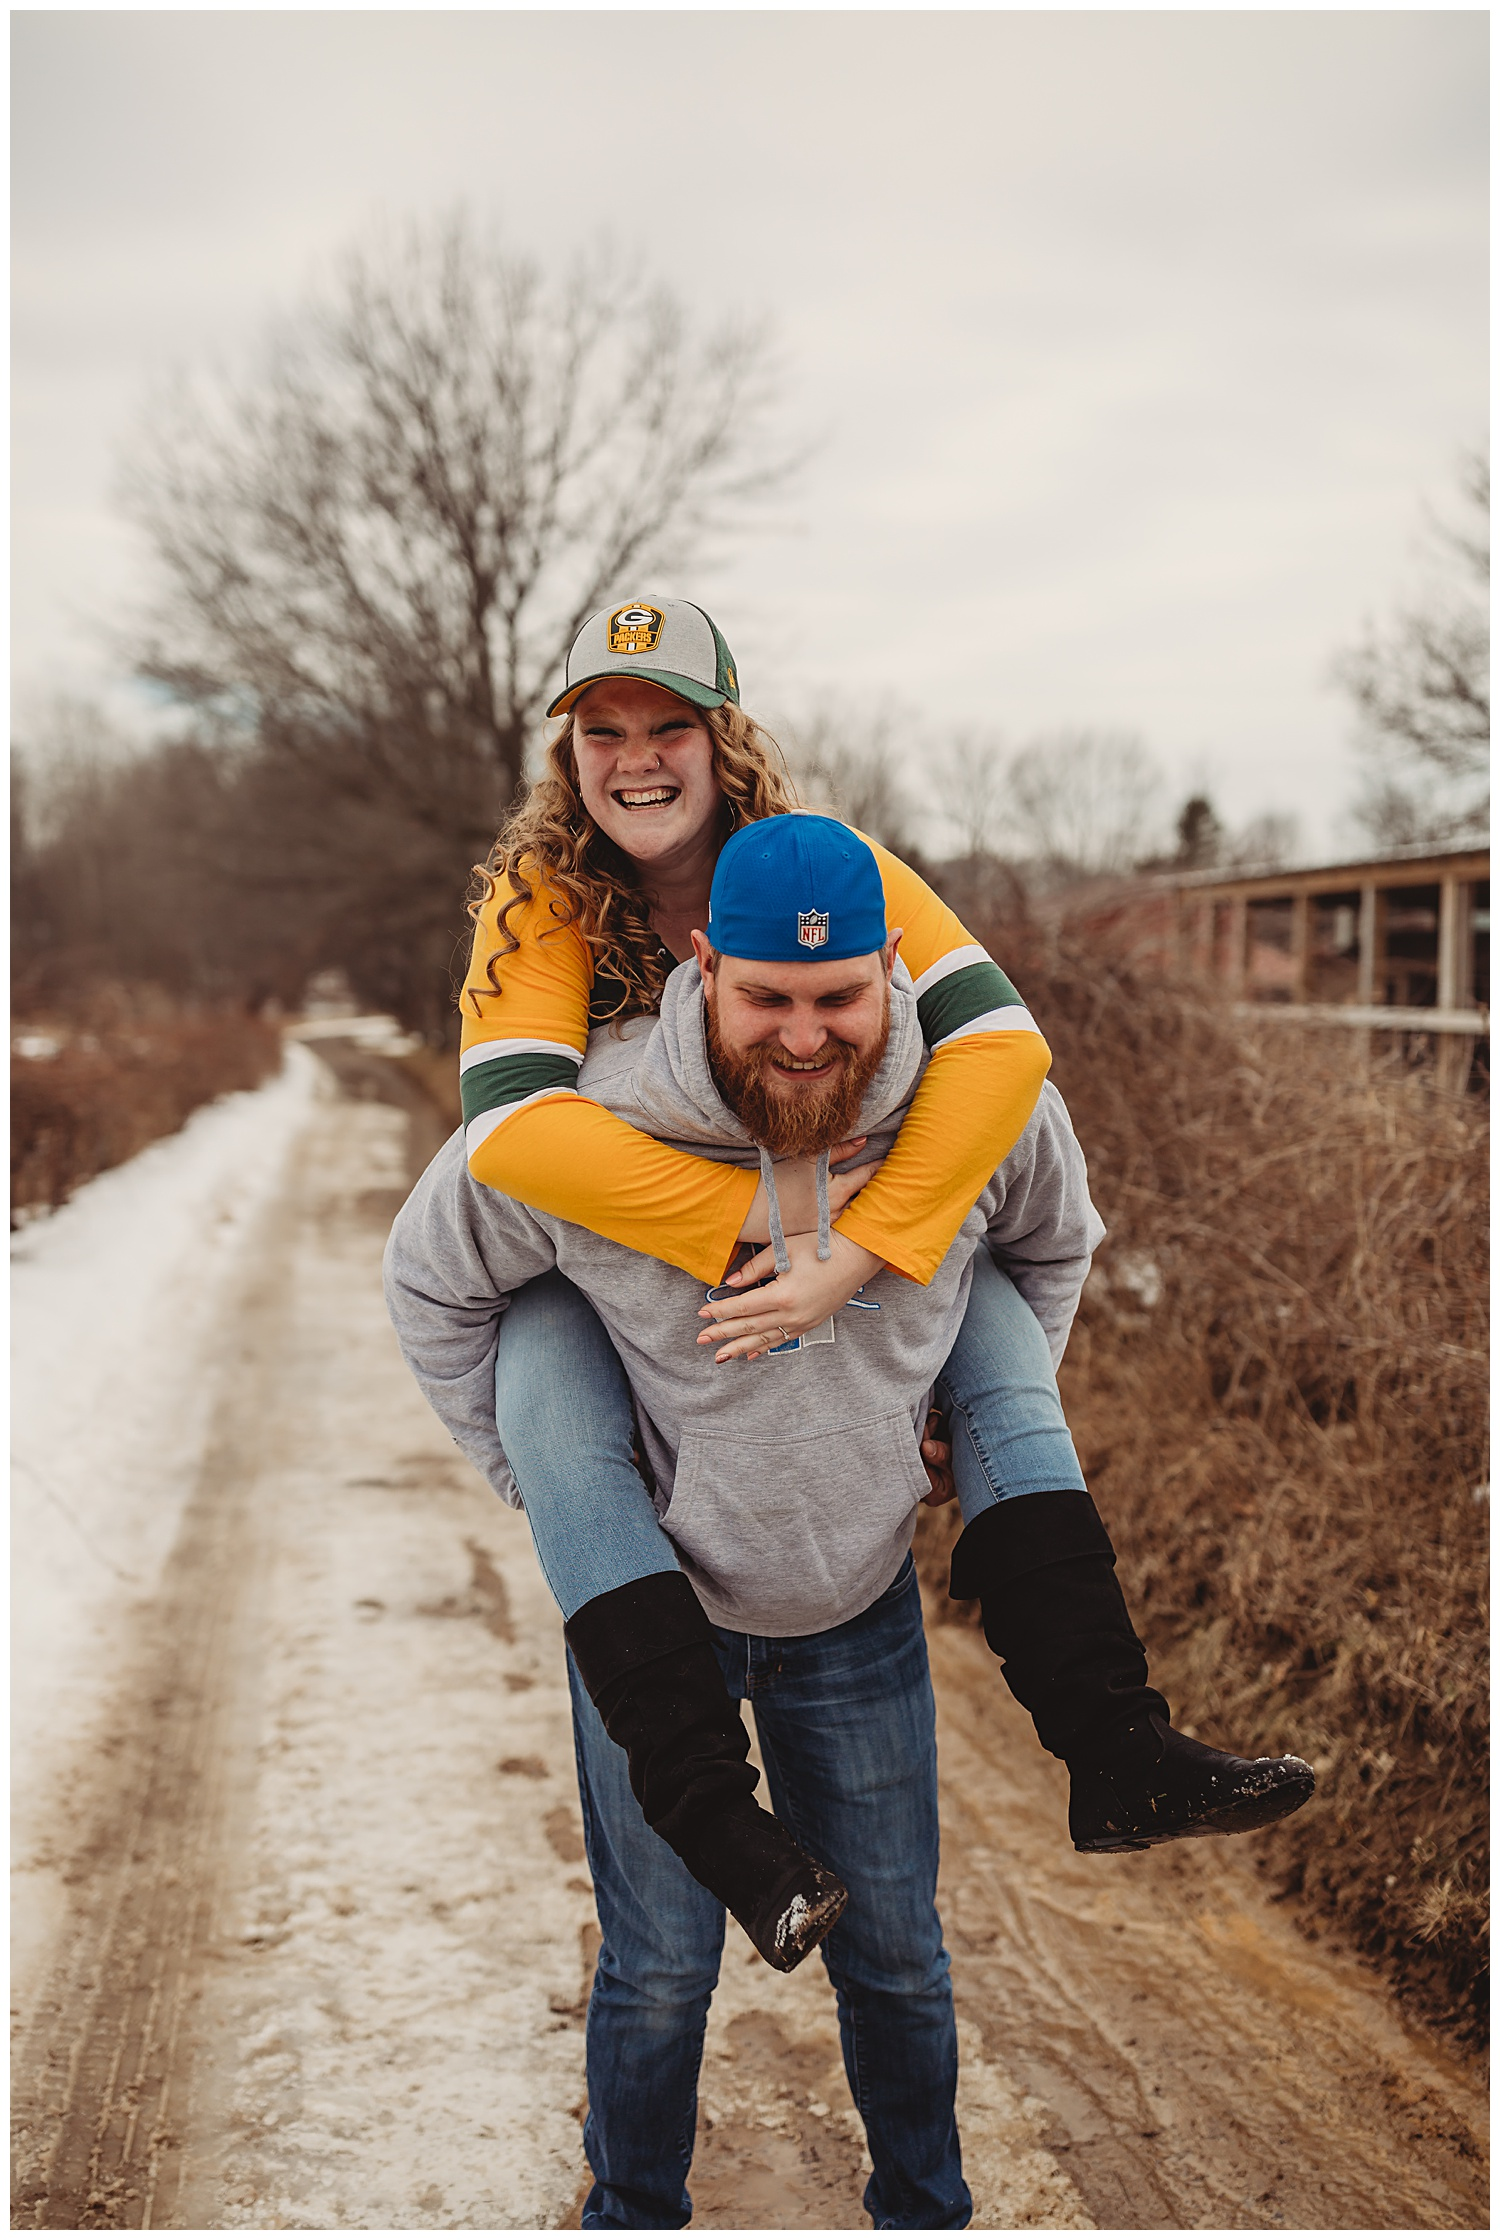 Peacock Road Family Farm Laingsburg MIchigan Winter Engagement Session_1338.jpg